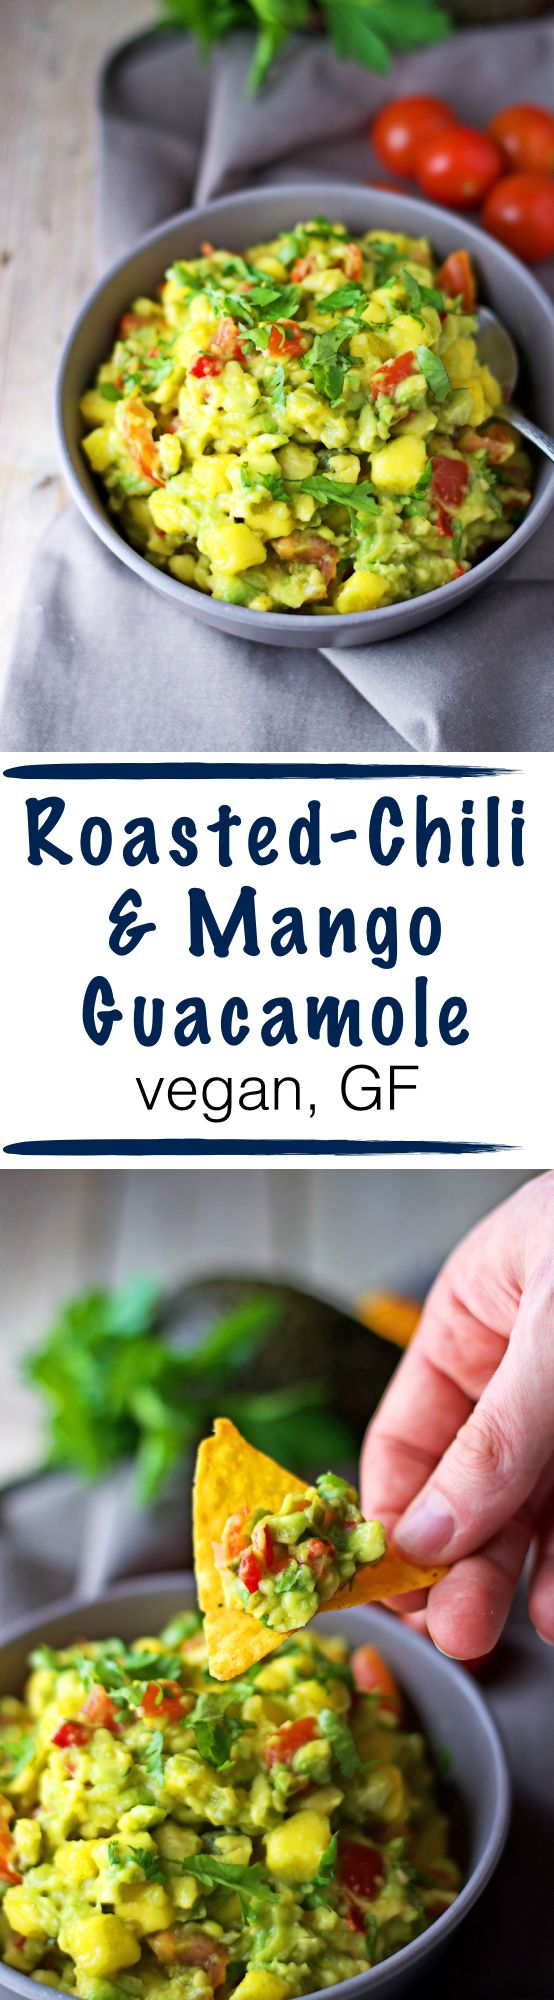 Summer time is BBQ time! And snack time! And picnic time! This roasted-chili mango guacamole goes well with bread, chips, tortillas, nachos – basically with everything dip-able!